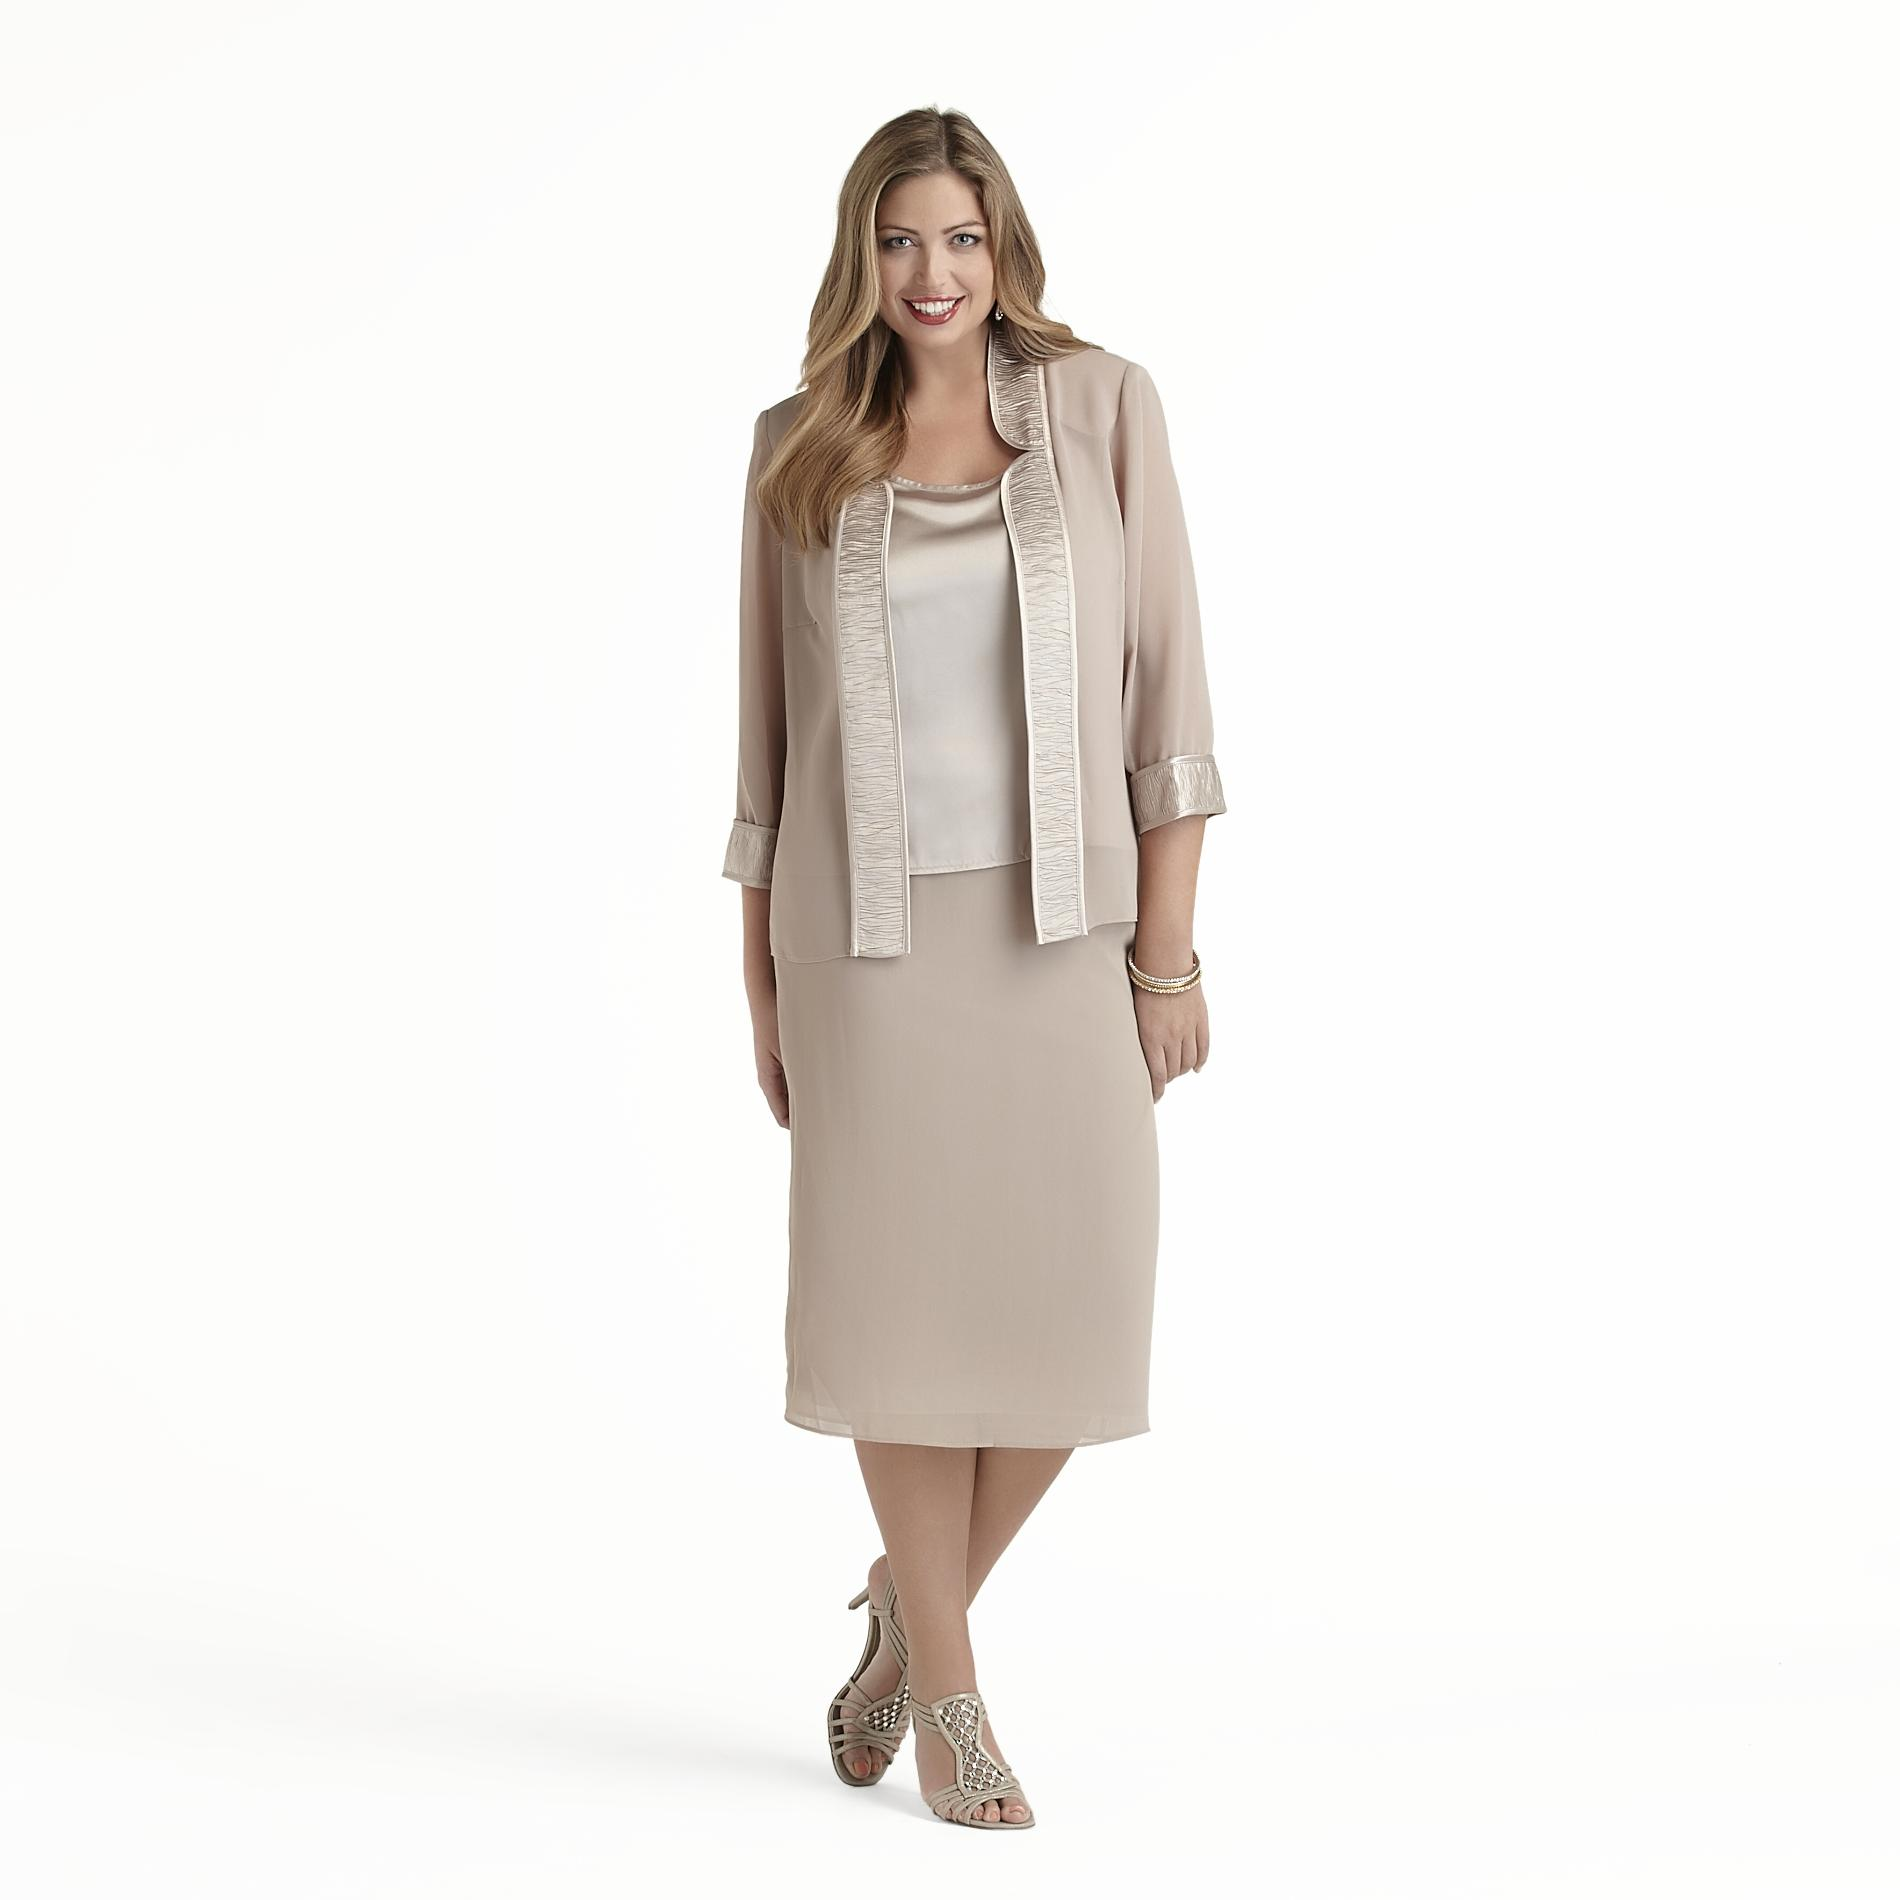 Dana Kay Women's Plus Jacket, Skirt & Top at Sears.com